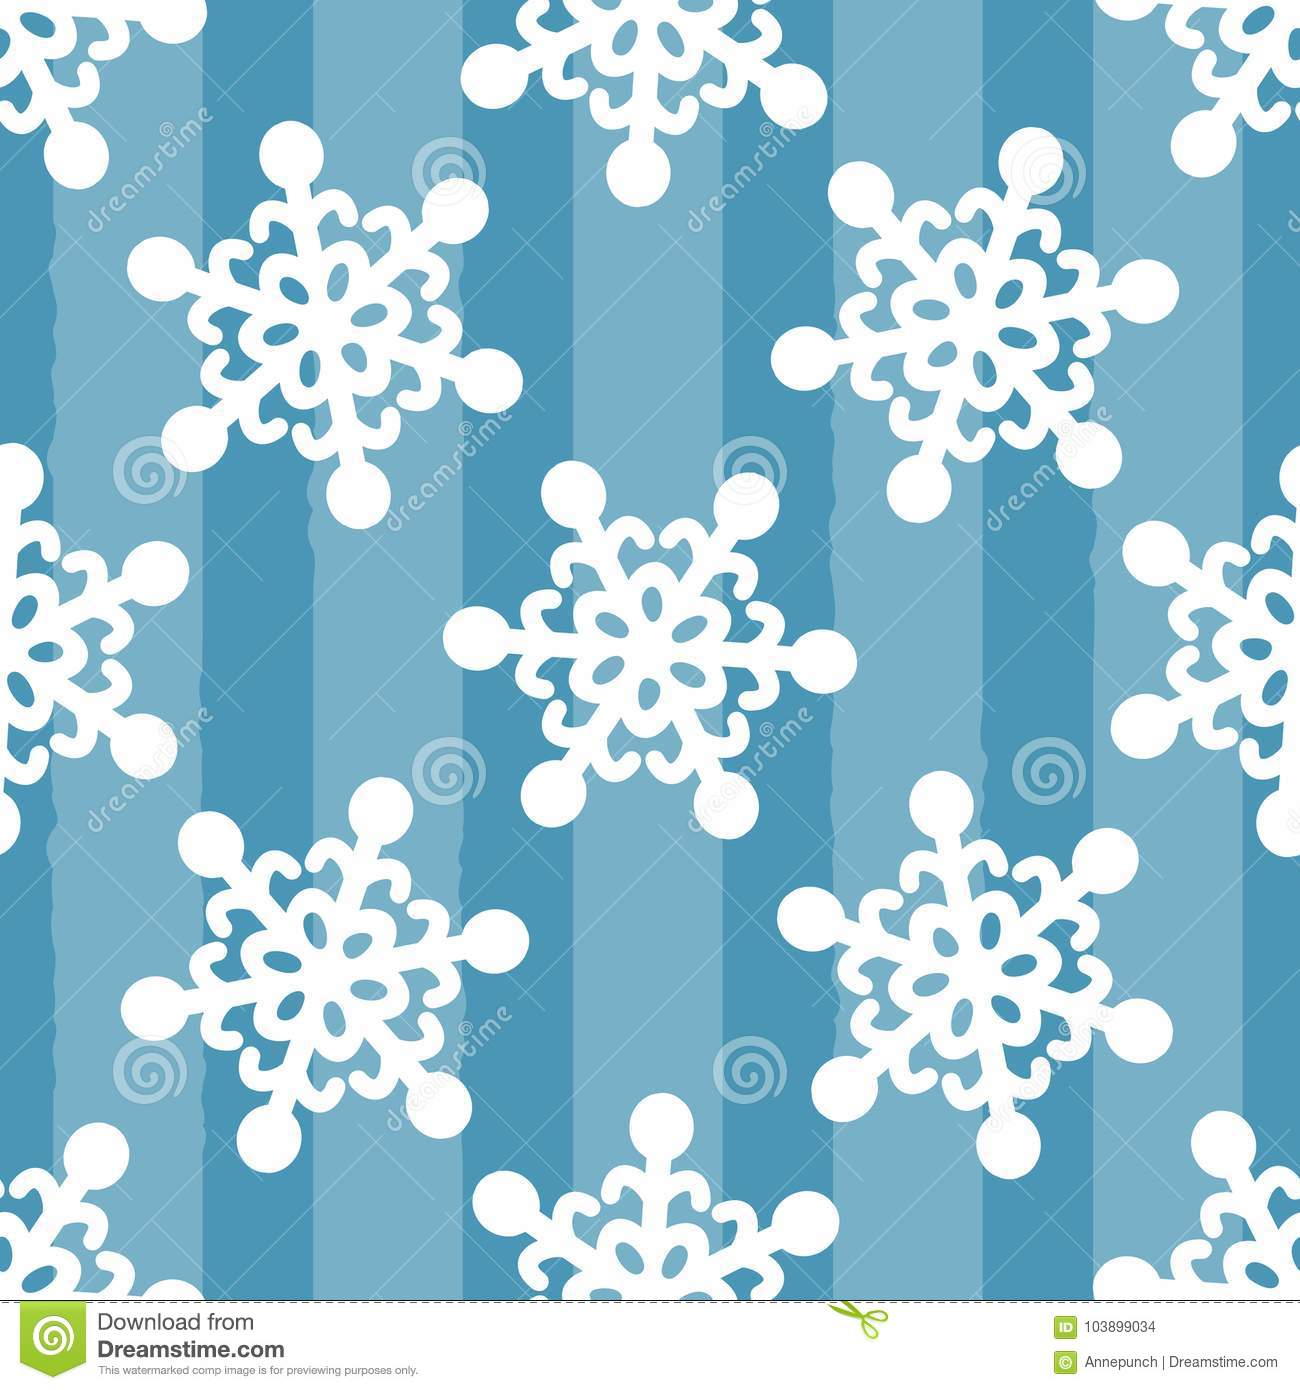 White snowflakes on striped blue background. Drawn by hand. Seamless pattern.